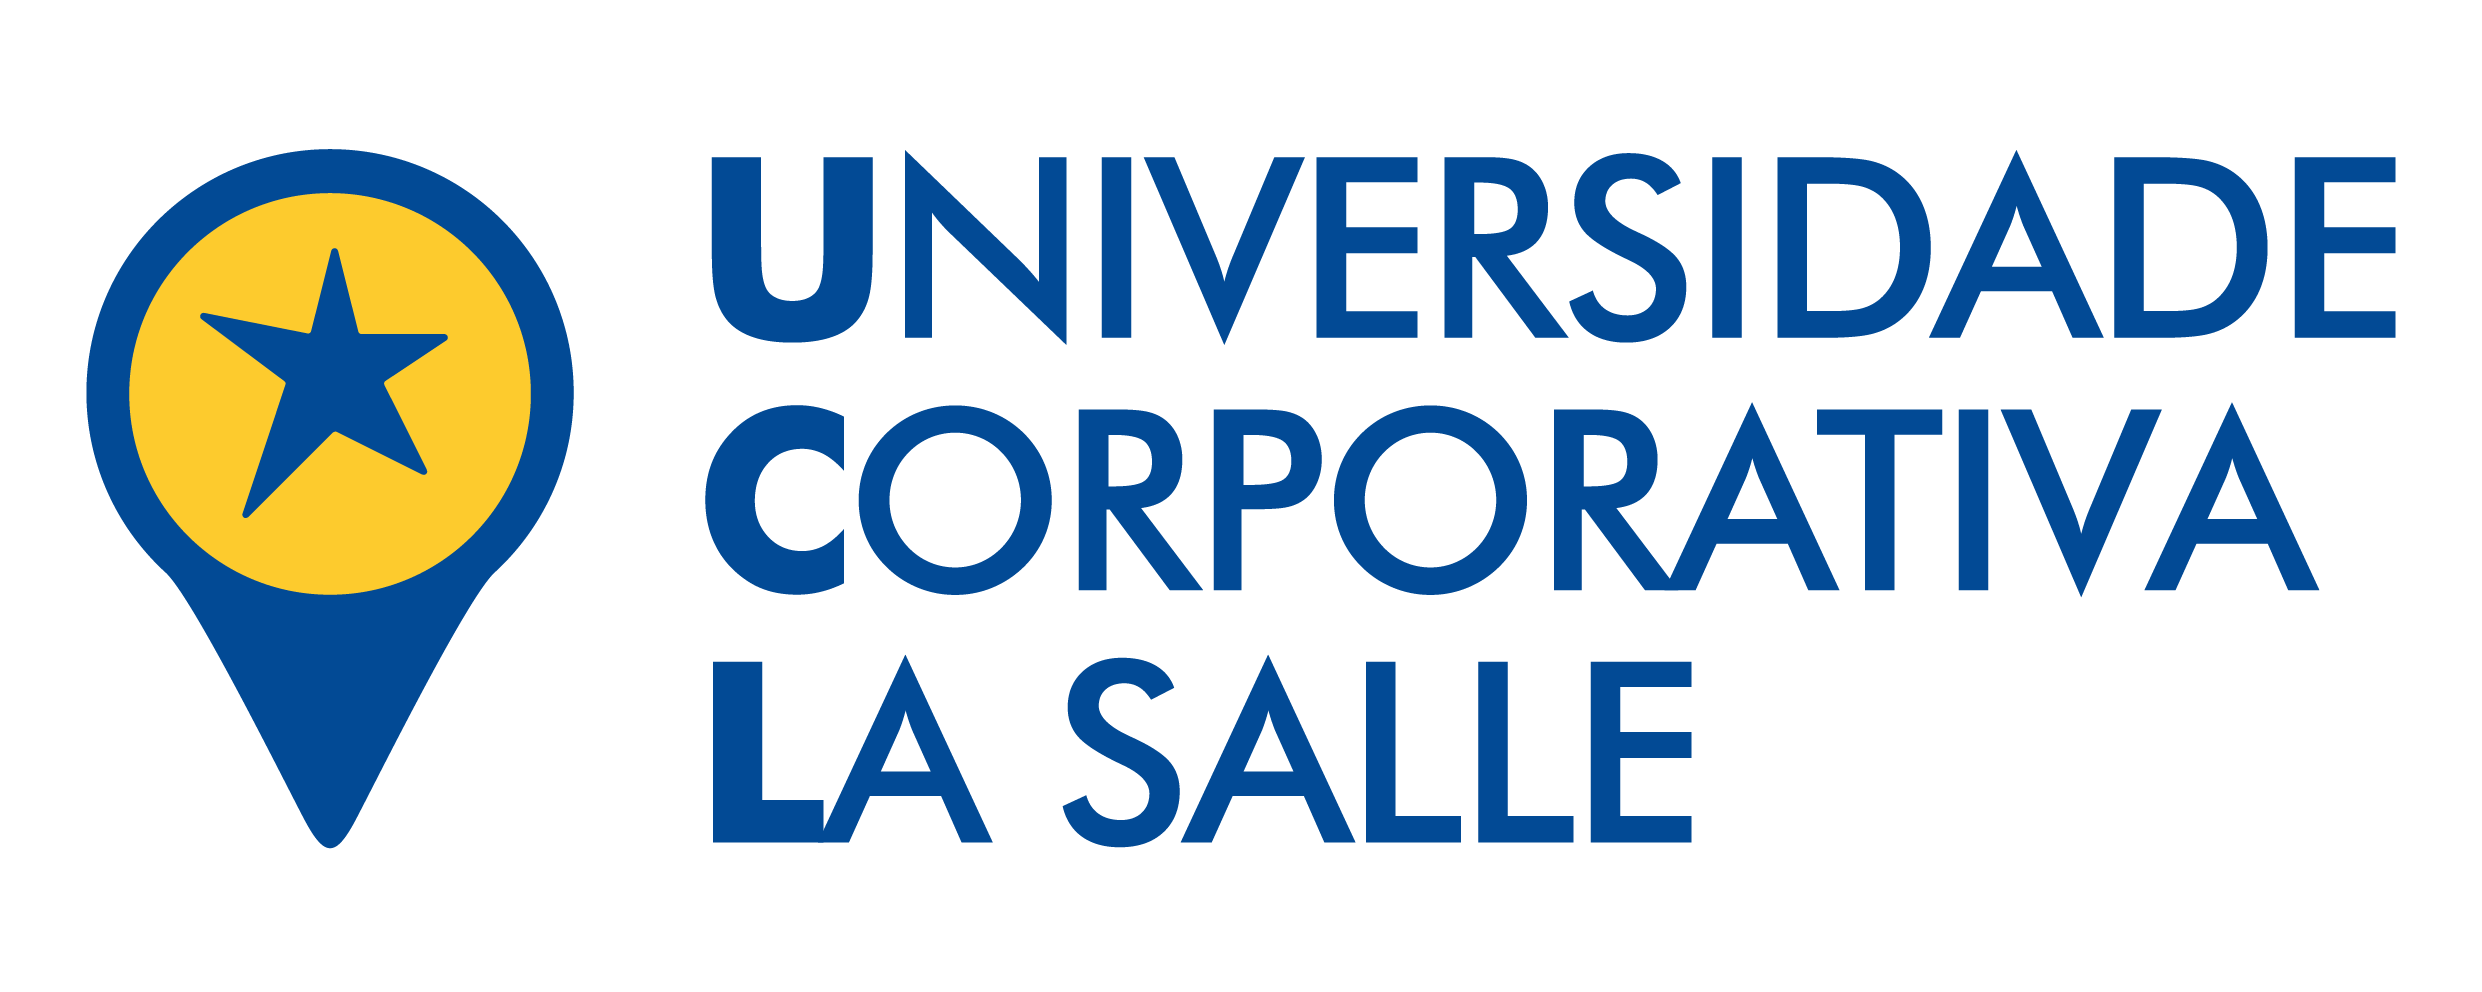 Universidade Corporativa La Salle